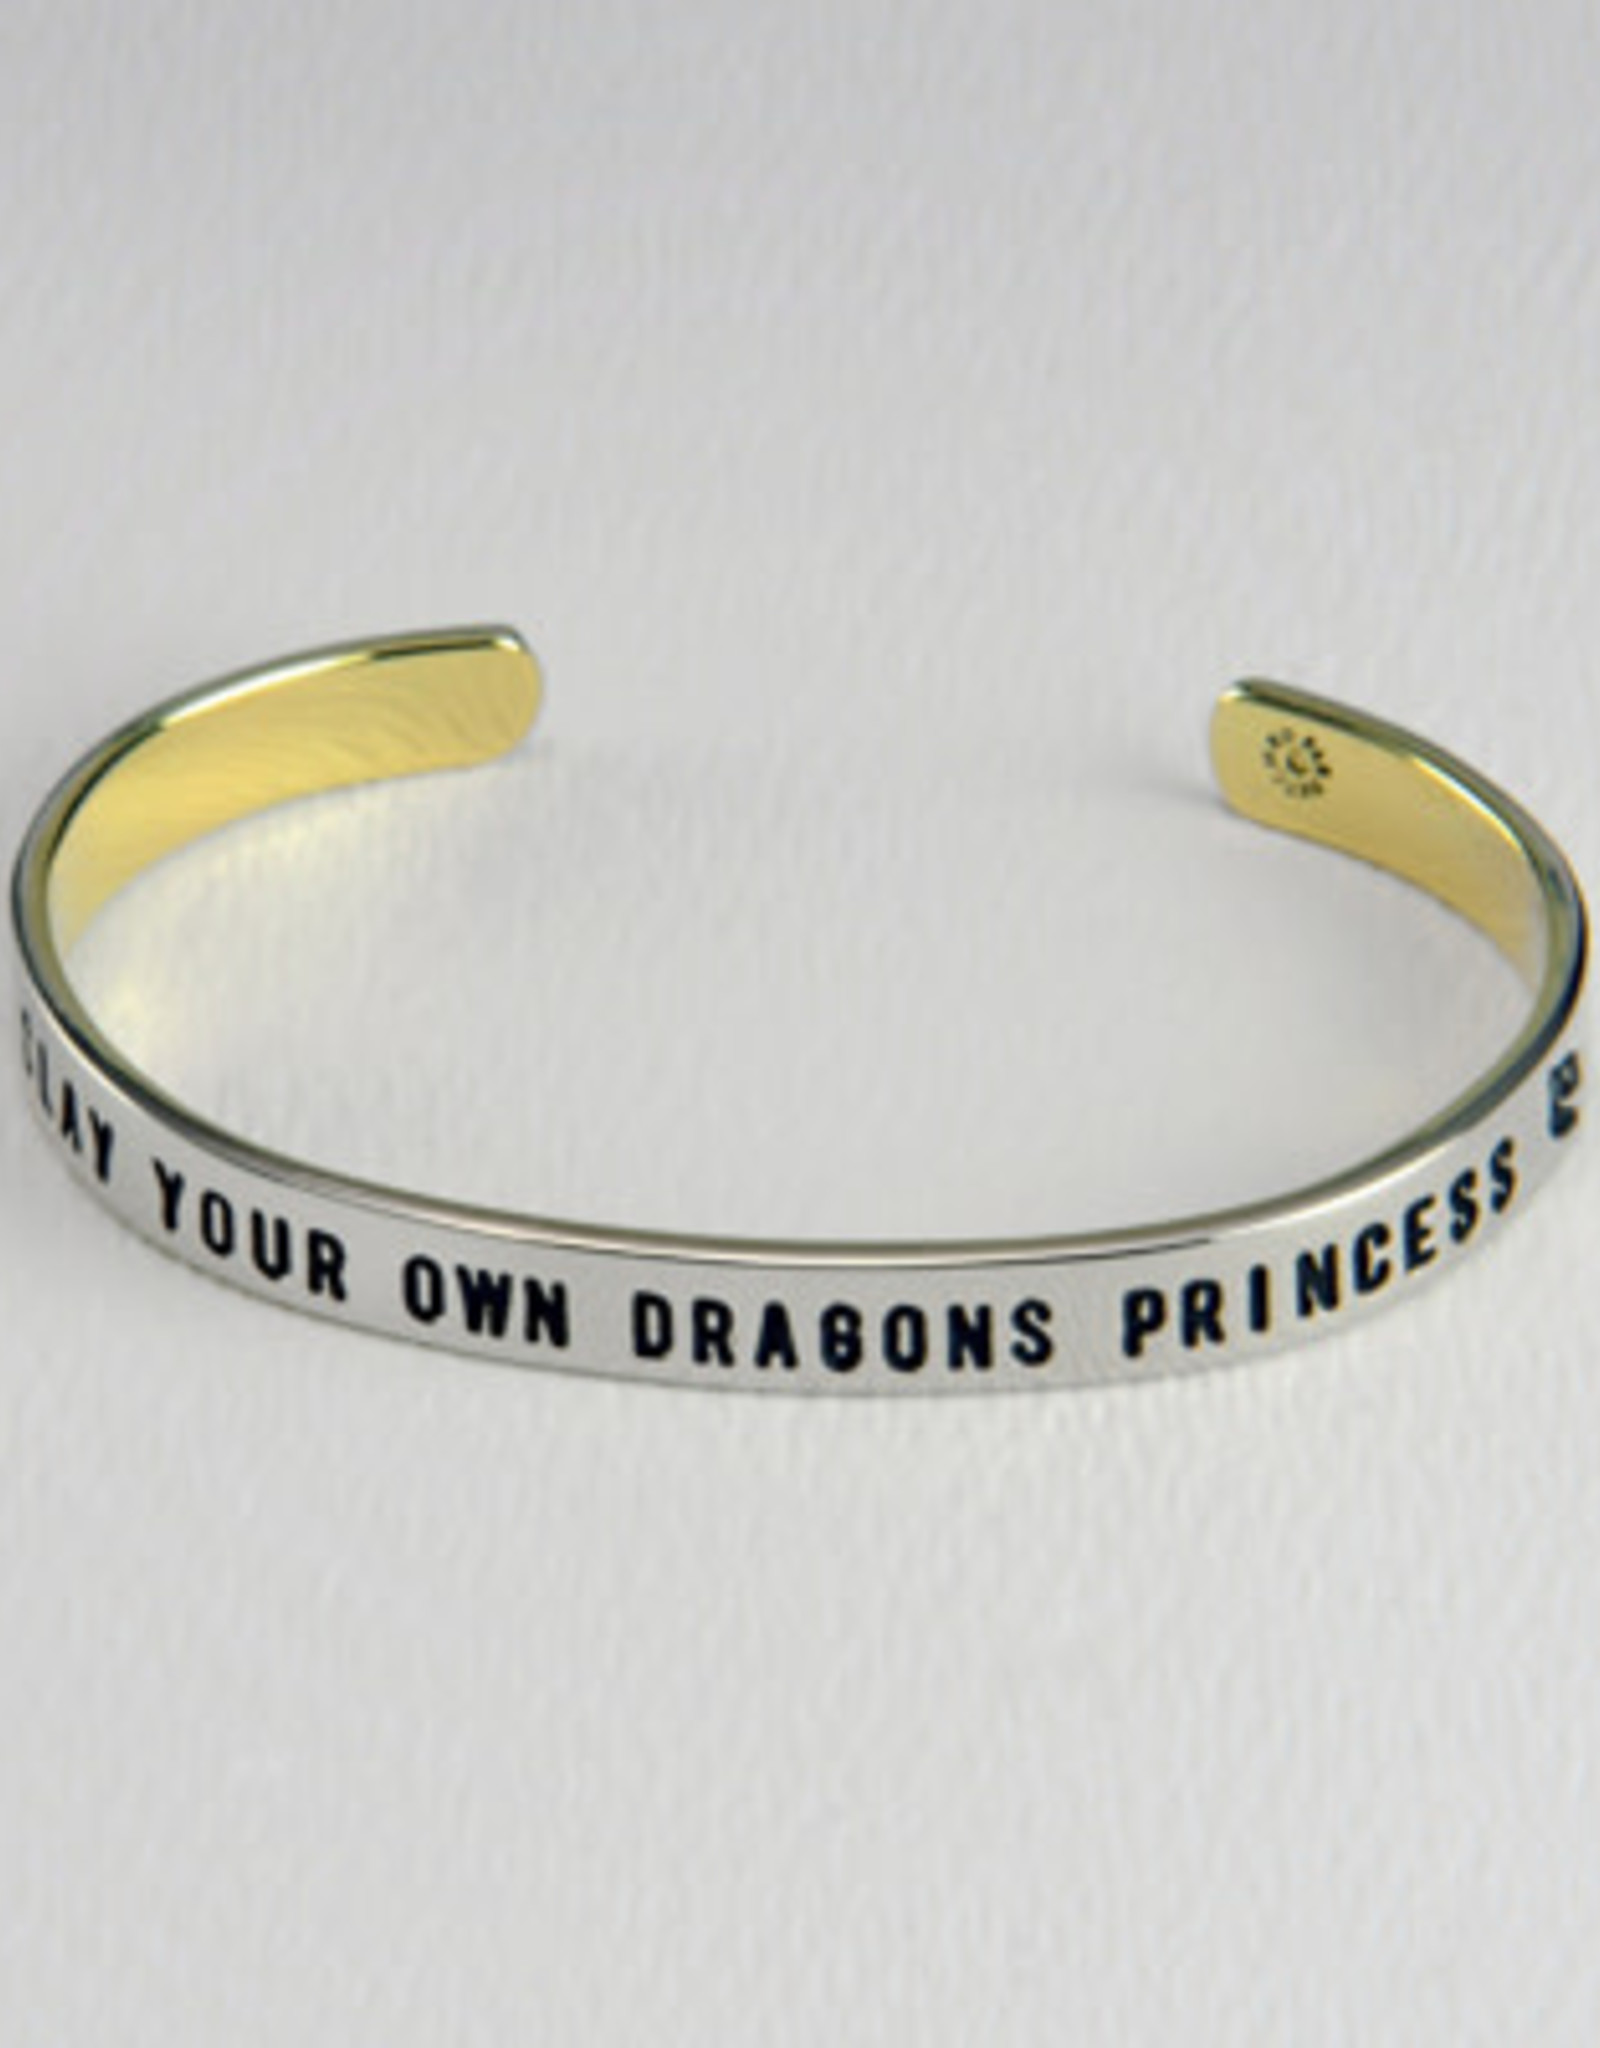 Stackable Cuffs,  SLAY YOUR OWN DRAGONS PRINCESS